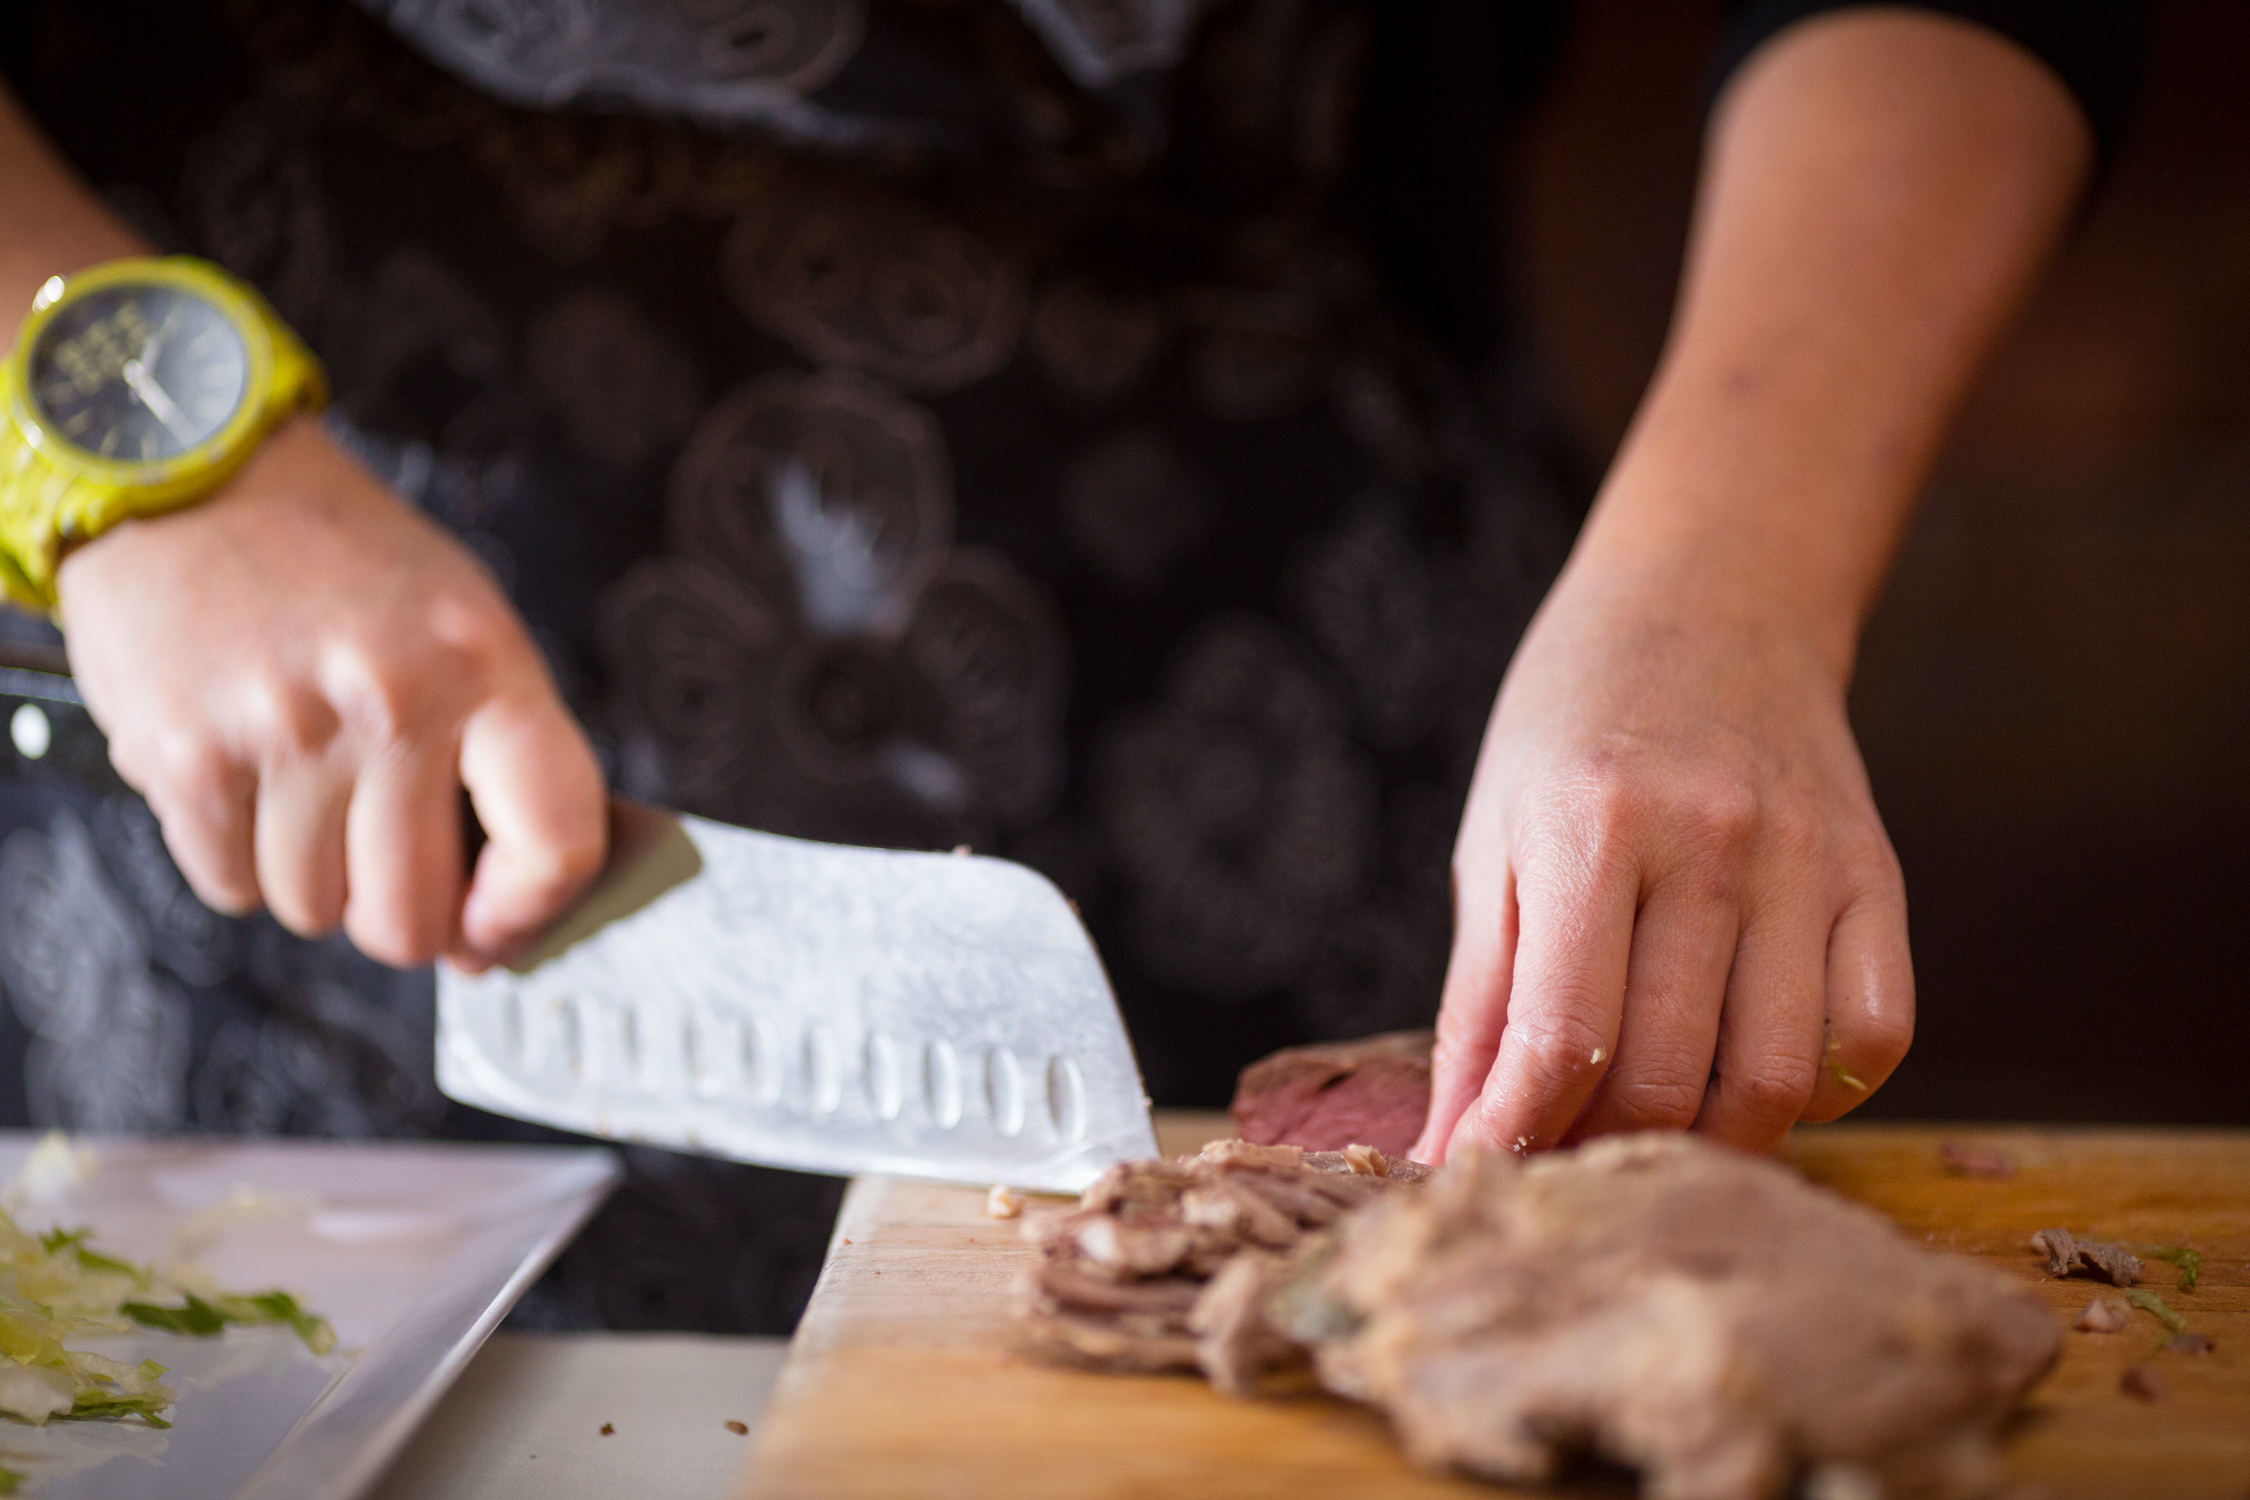 The deft hands of a chef wield a butcher knife to slice steaks in a food photograph by Stina Booth